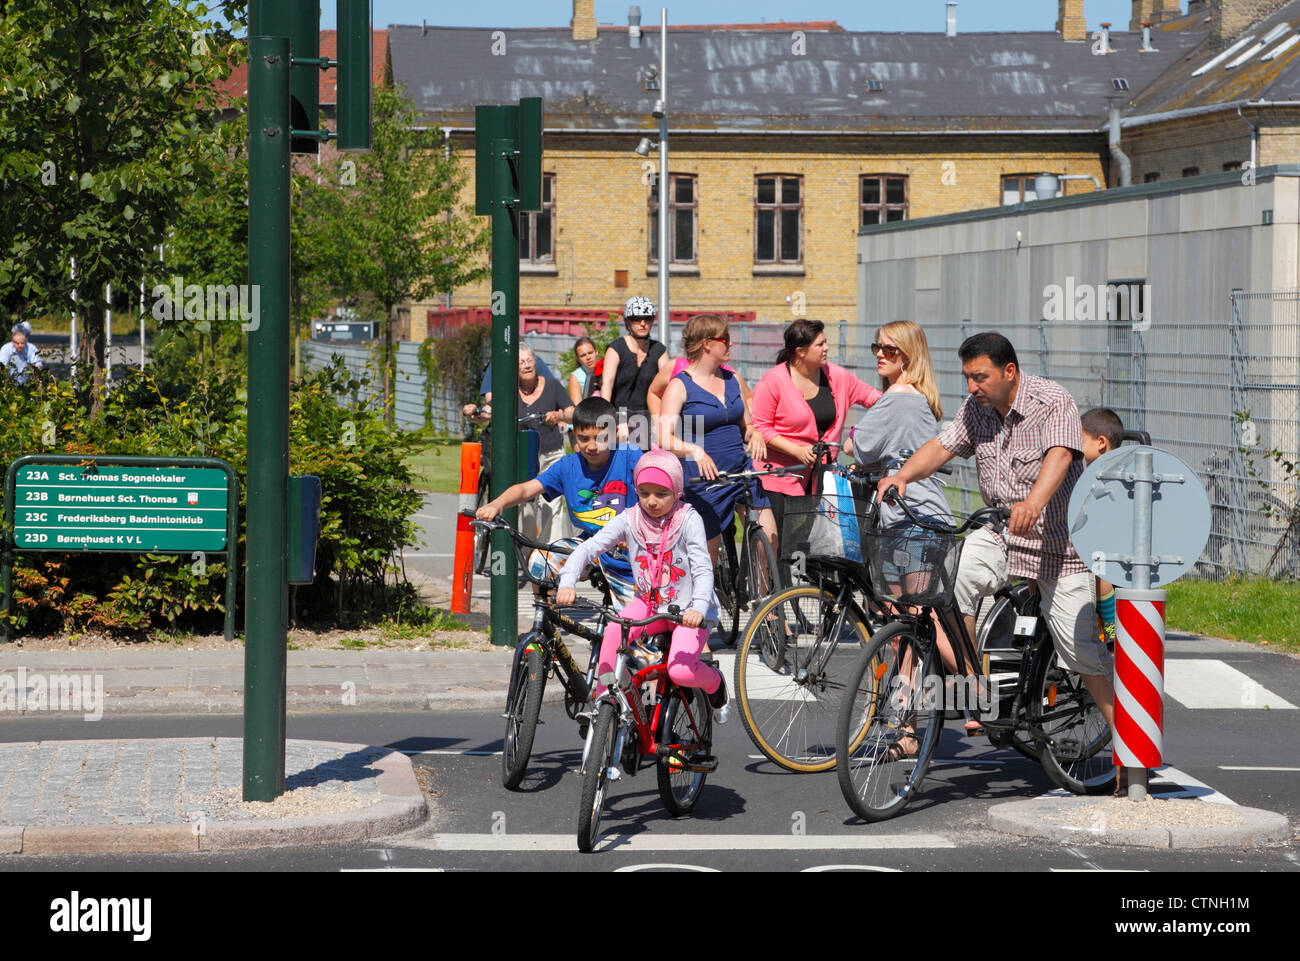 The Green 8 km bicycle route 51 from Nørrebro to Frederiksberg in Copenhagen meets the C99 bicycle superhighway - Stock Image